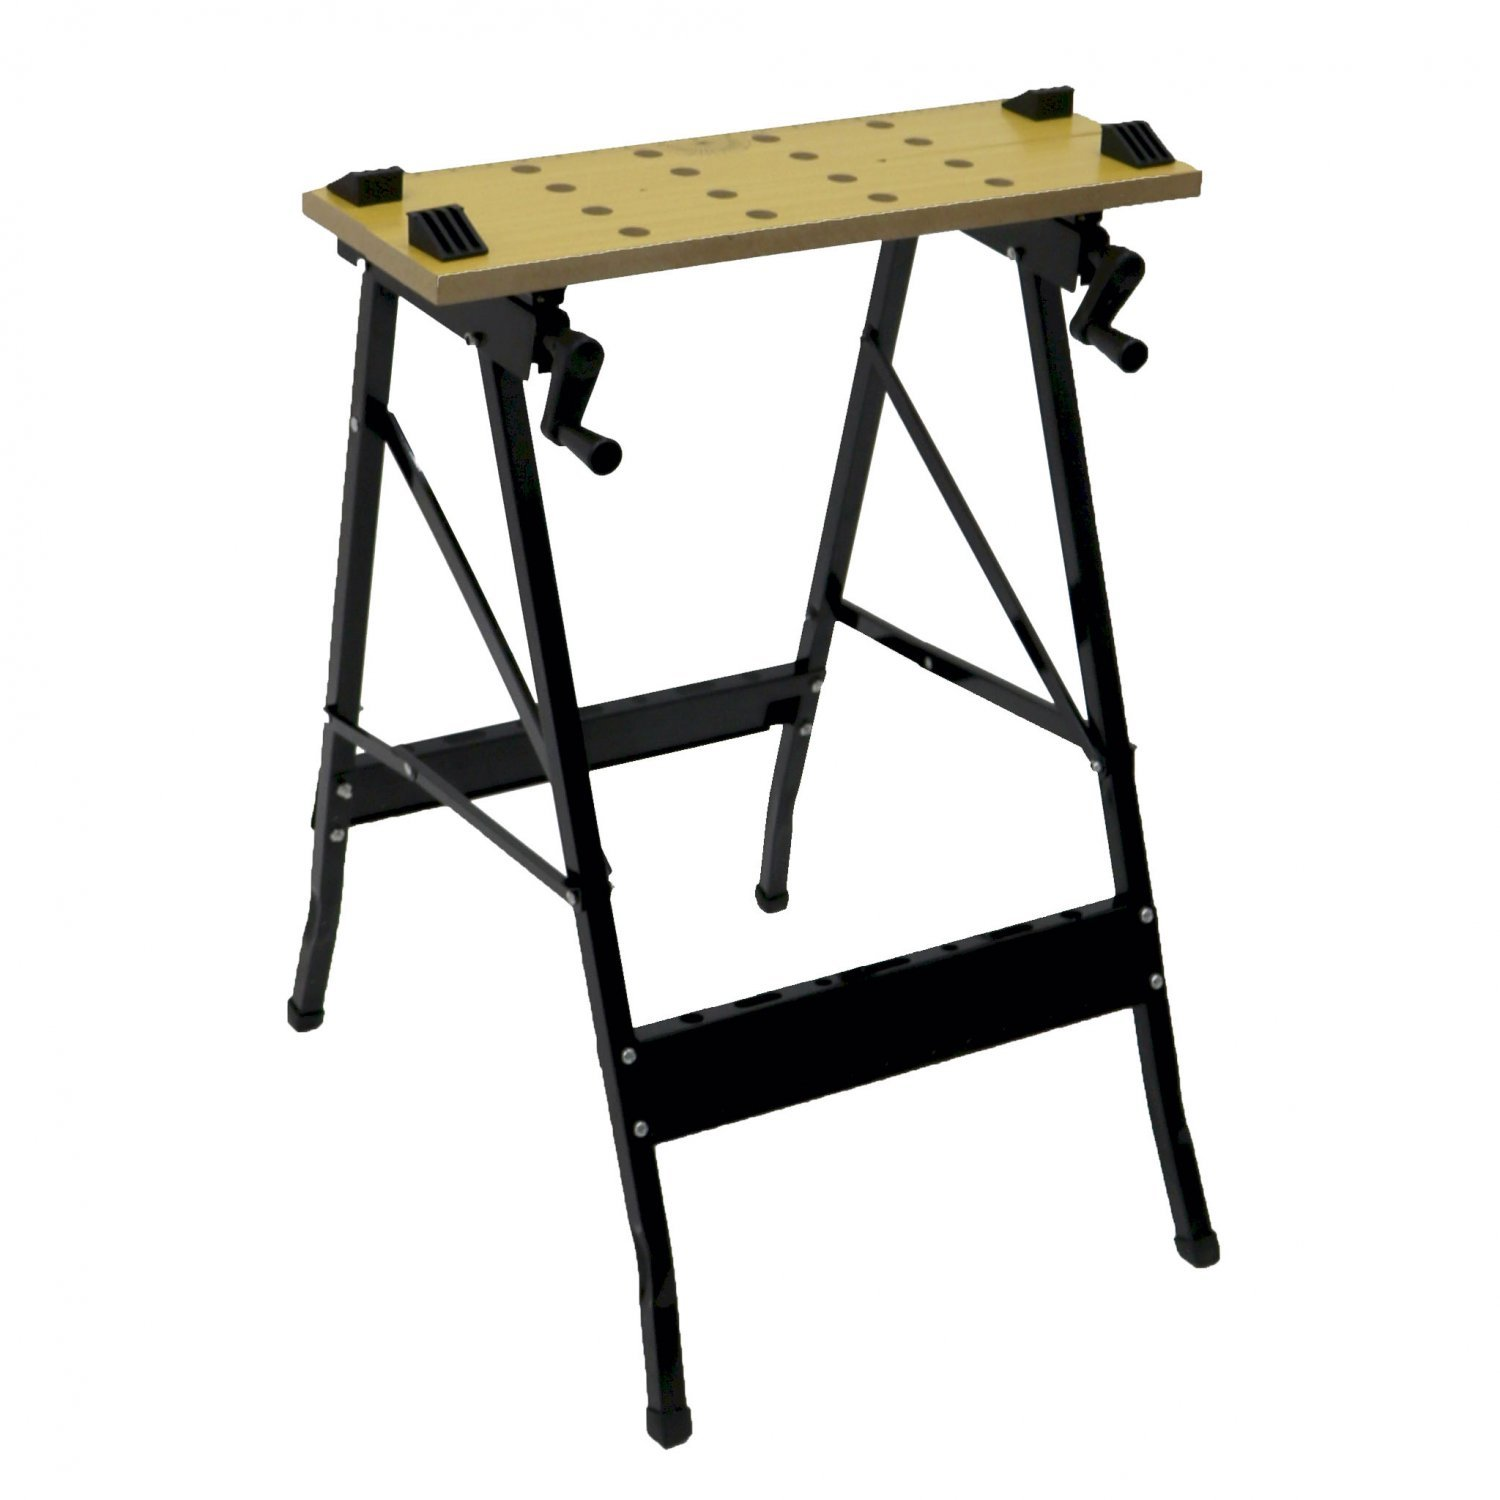 Folding Foldable Trestle Work Bench Workbench Portable 100kg Oypla Stocking The